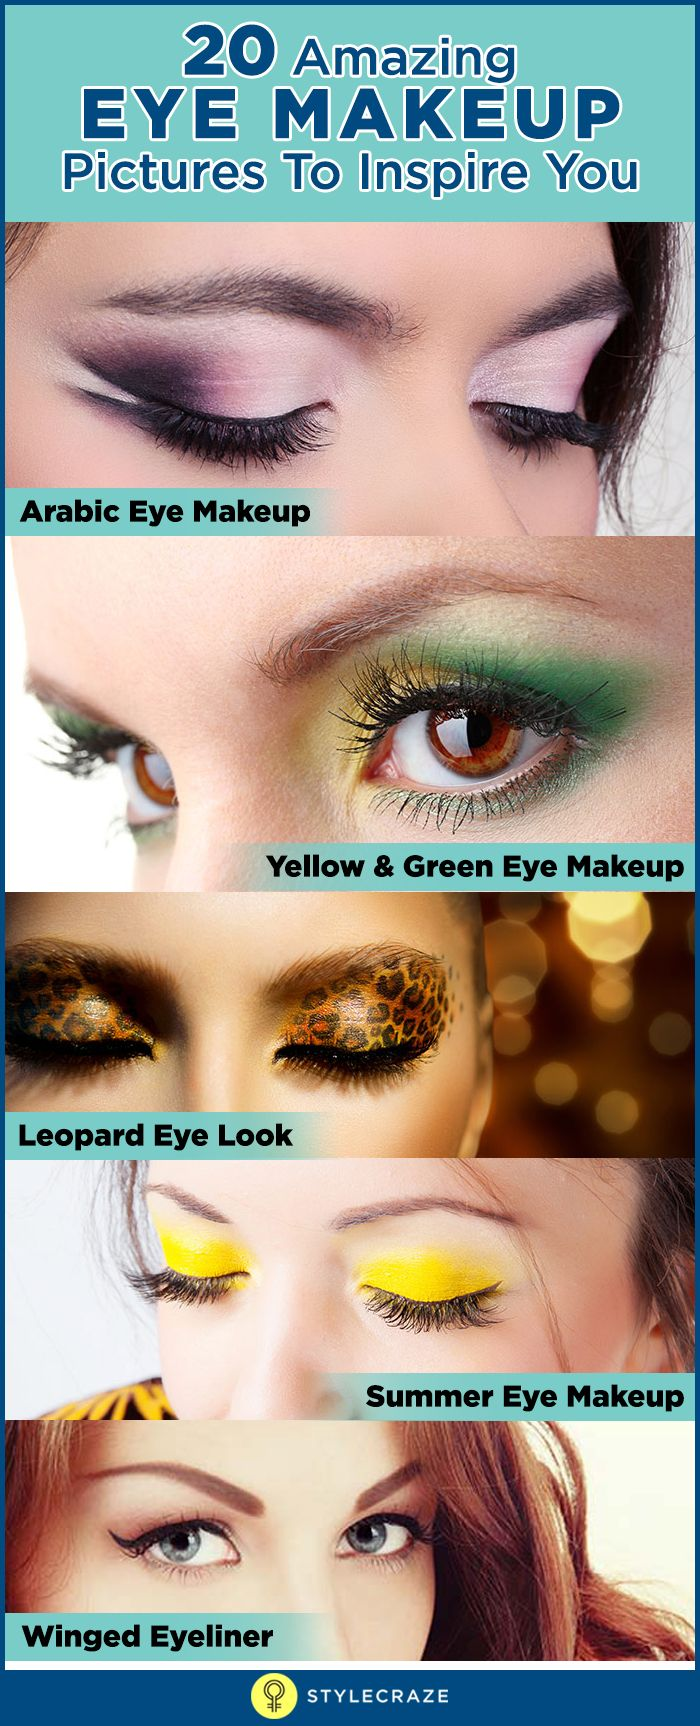 Top 20 Sexy Eye Makeup Looks. Check here some of the best eye makeup pictures which look amazing and inspiring.